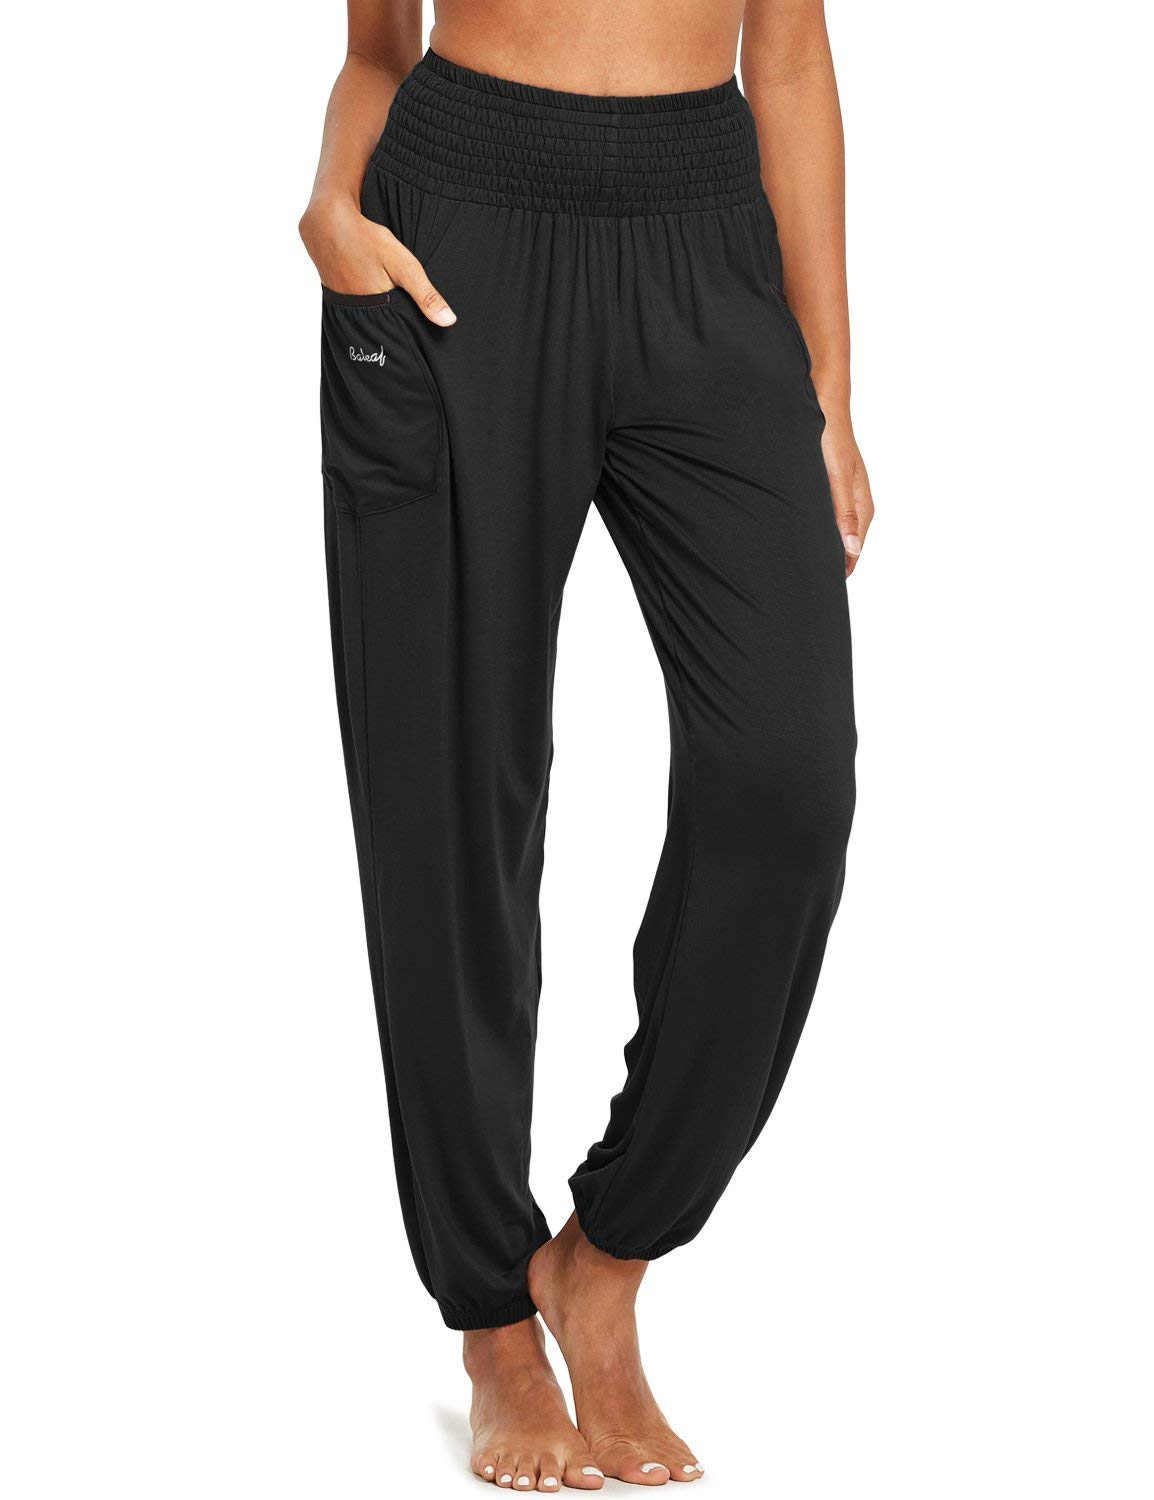 BALEAF Women's Bohemian Harem Pants Lightweight Loose Tapered Yoga High Waisted Travel Beach Sweatpants Pajama